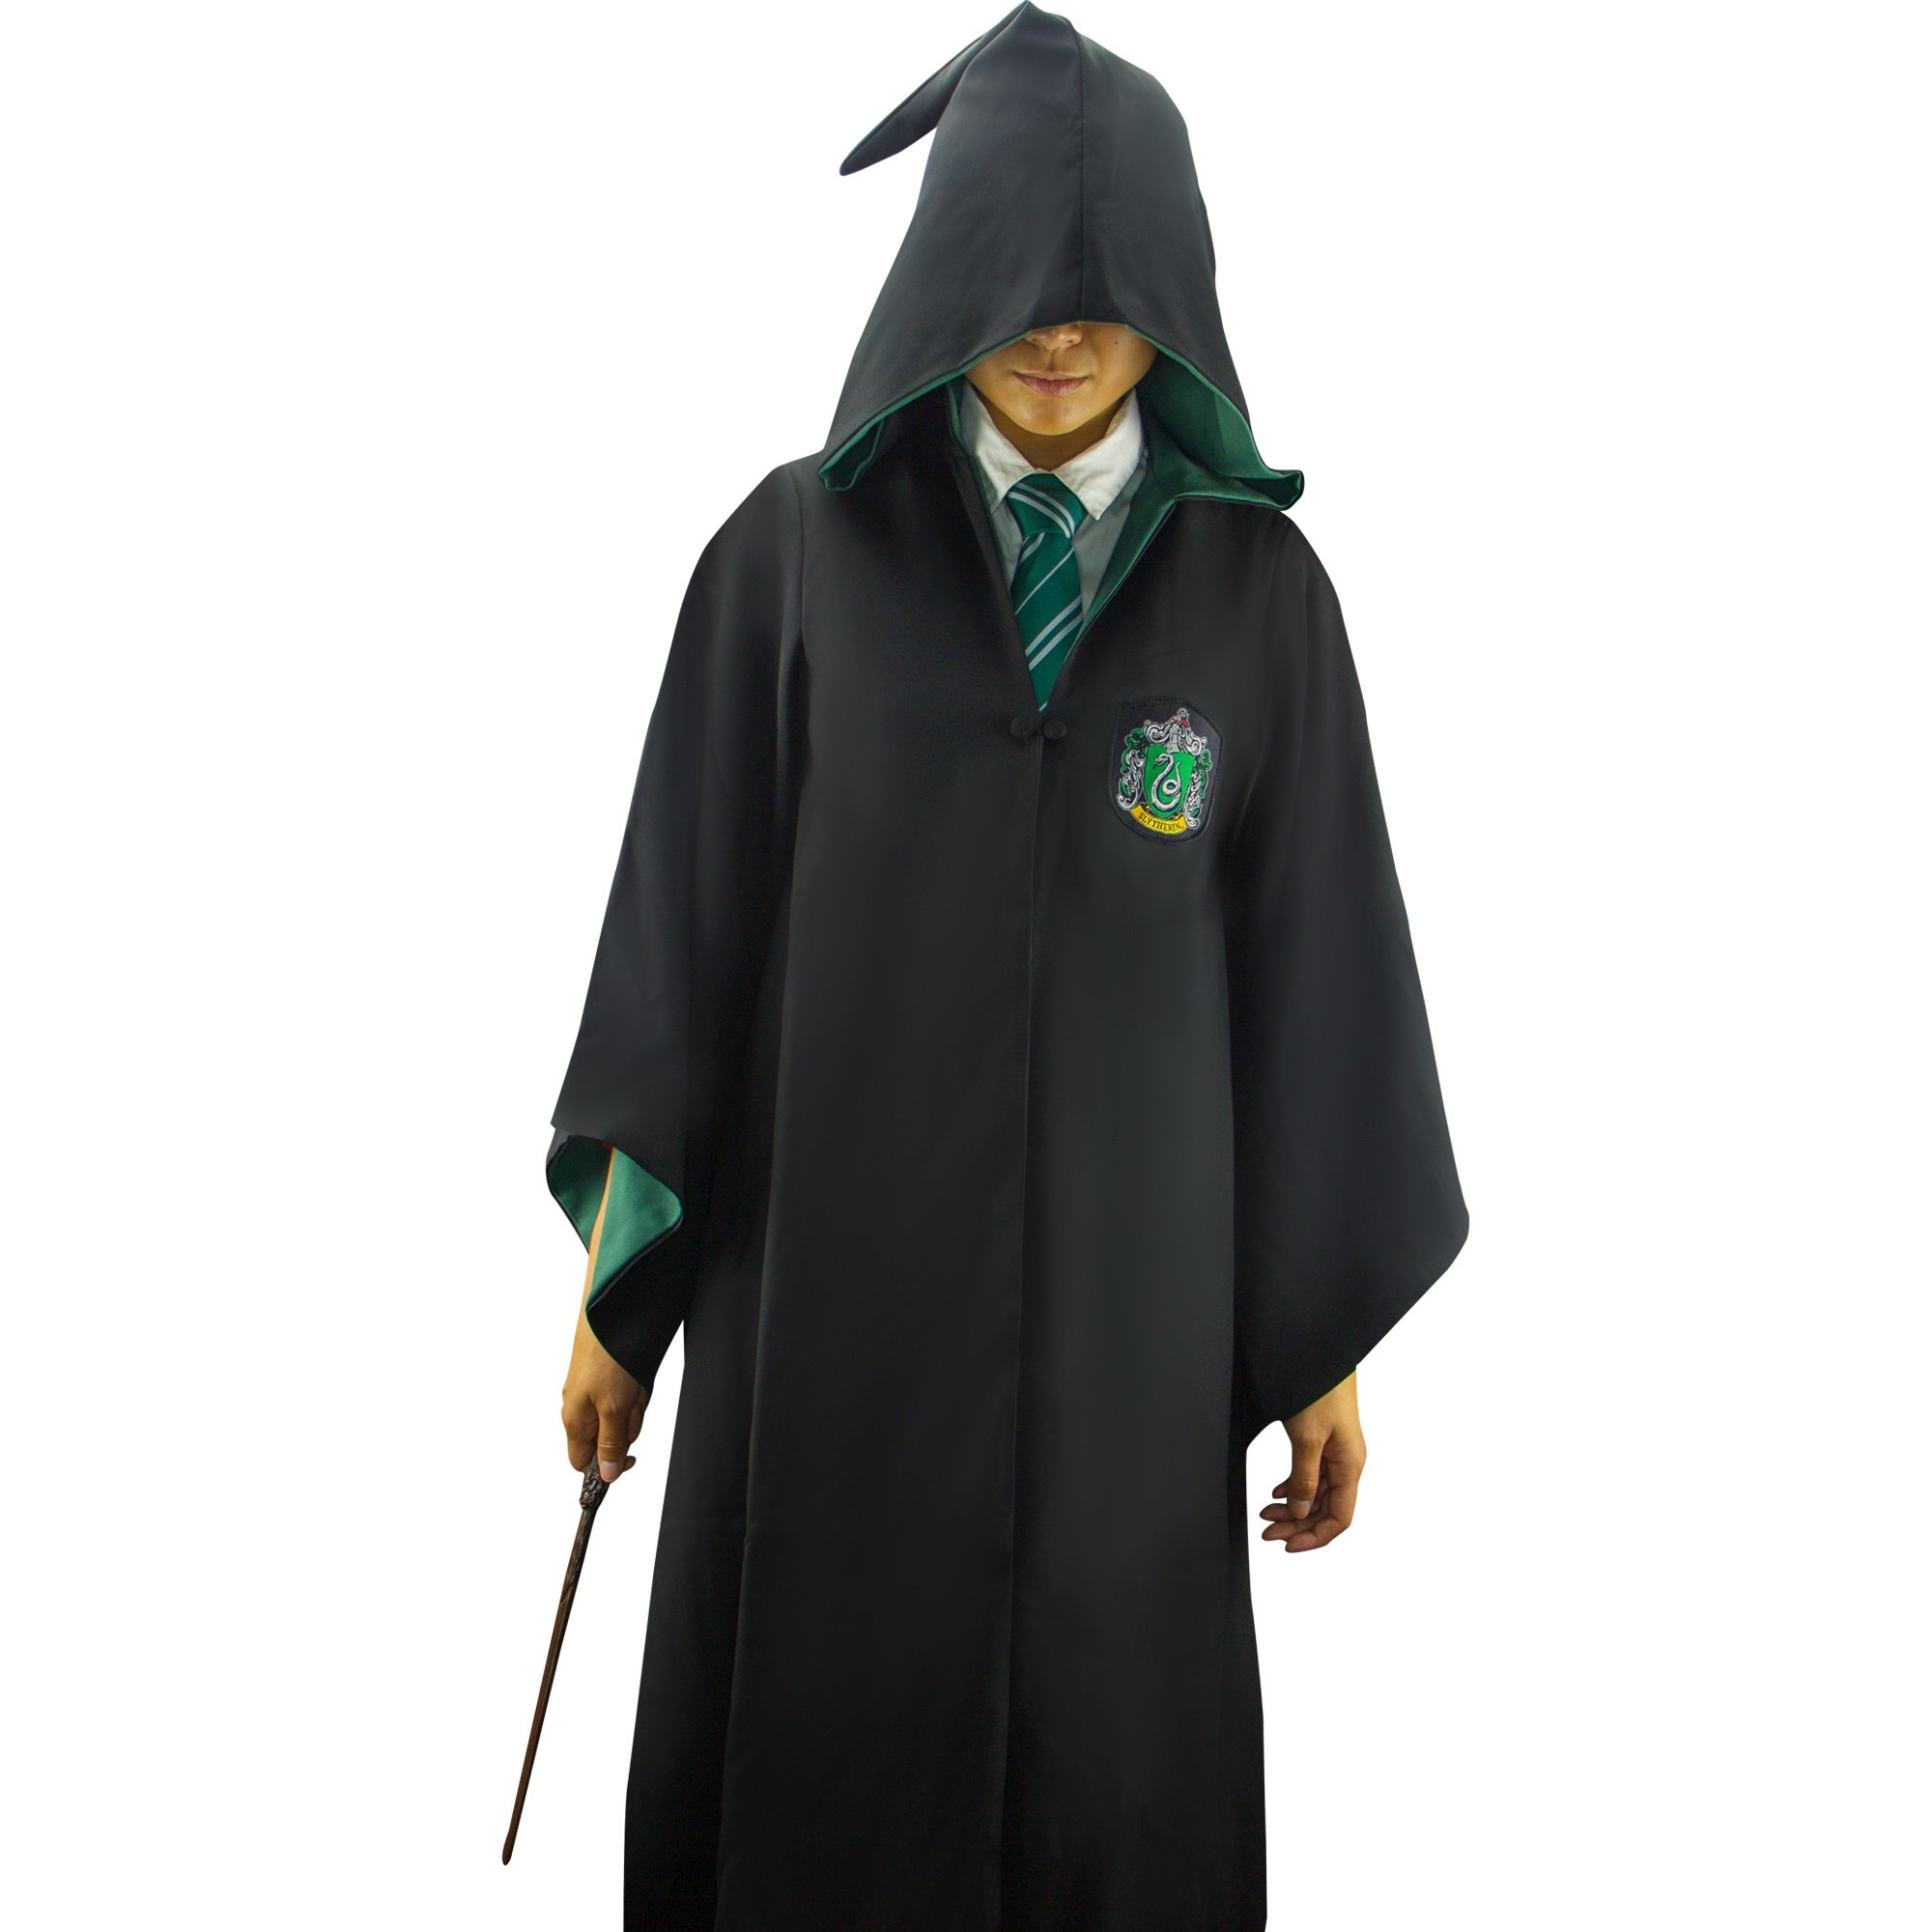 Harry Potter Authentic Tailored Wizard Robes Cloak by Cinereplicas by Cinereplicas (Image #5)